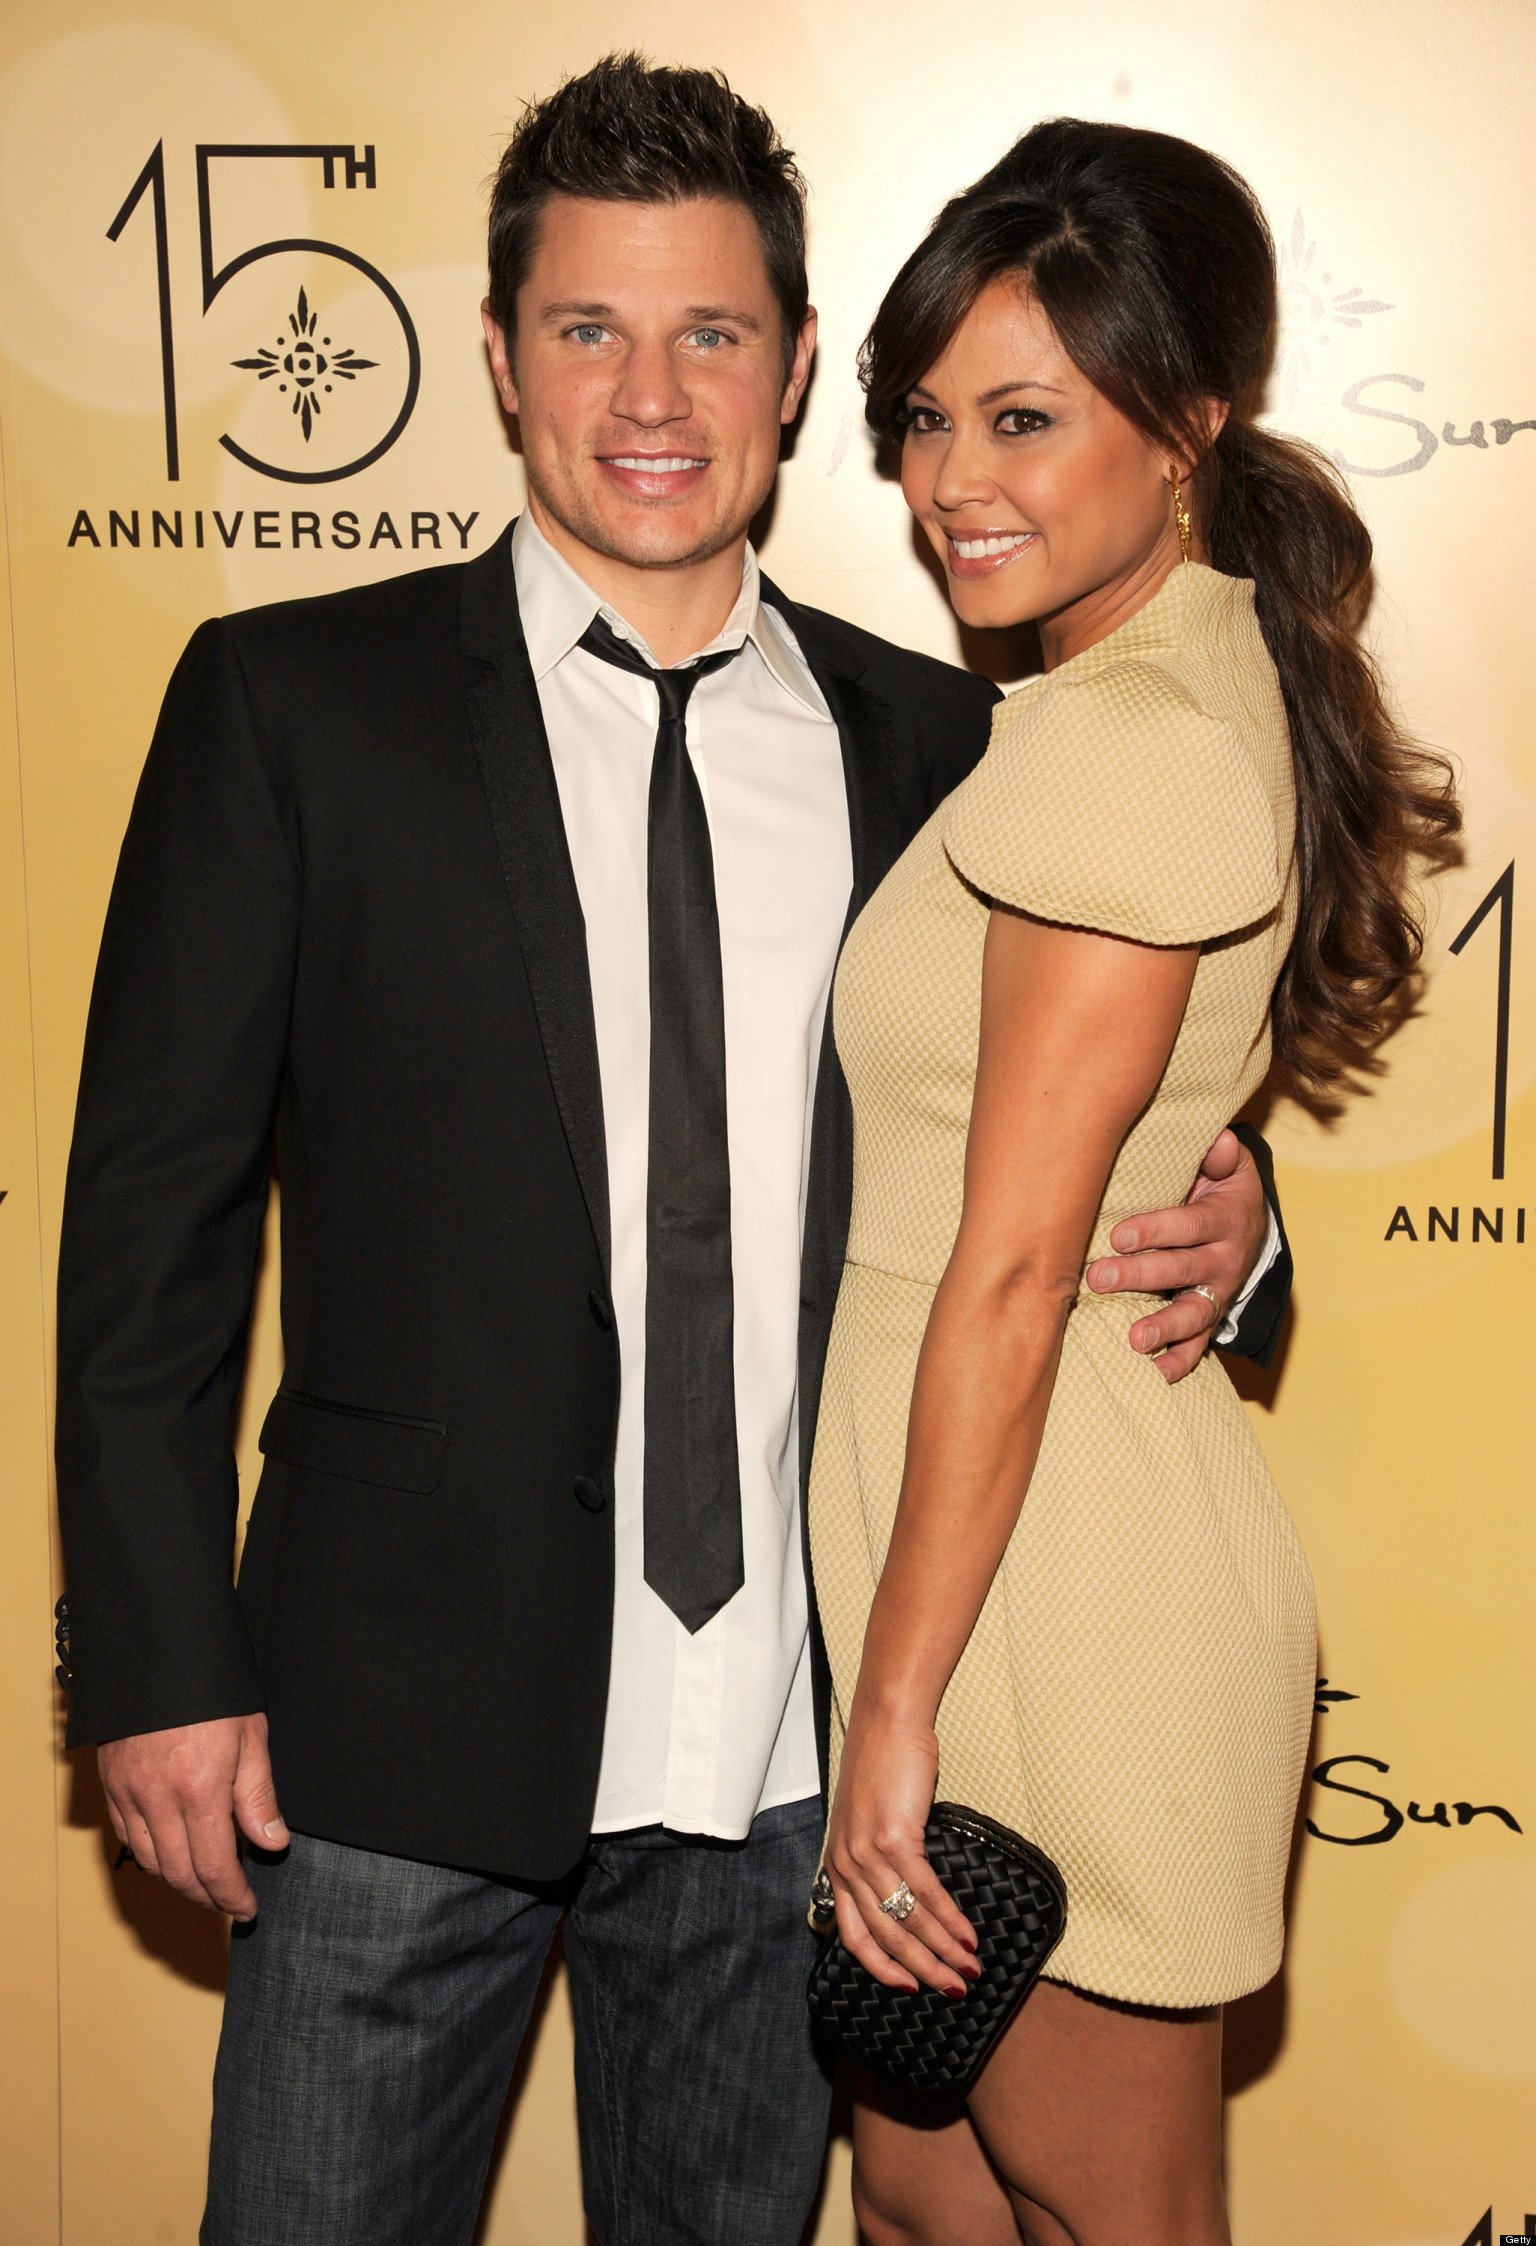 Nick lachey dating 2011